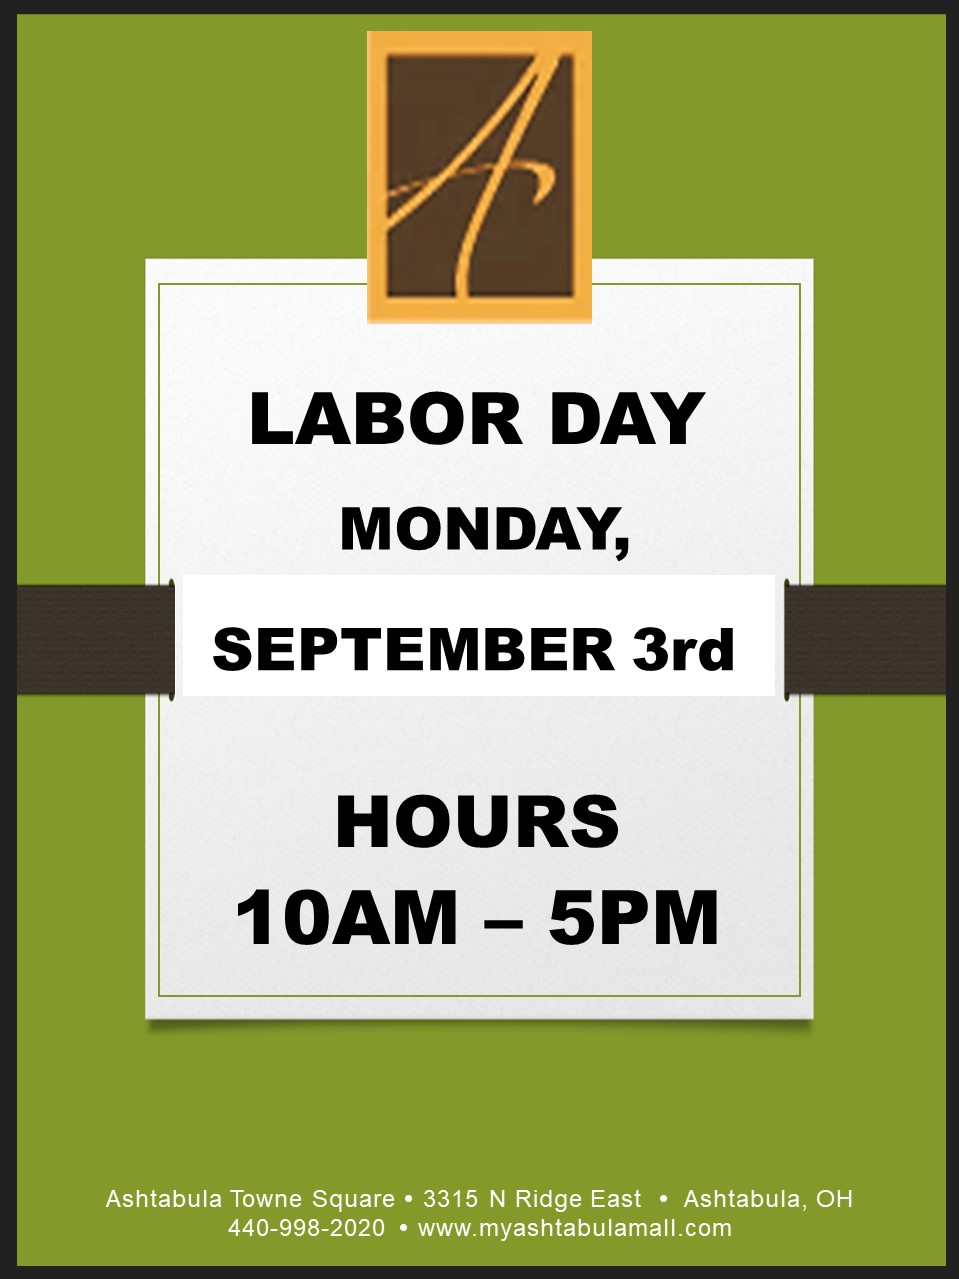 LABOR DAY HOURS 2018.jpg